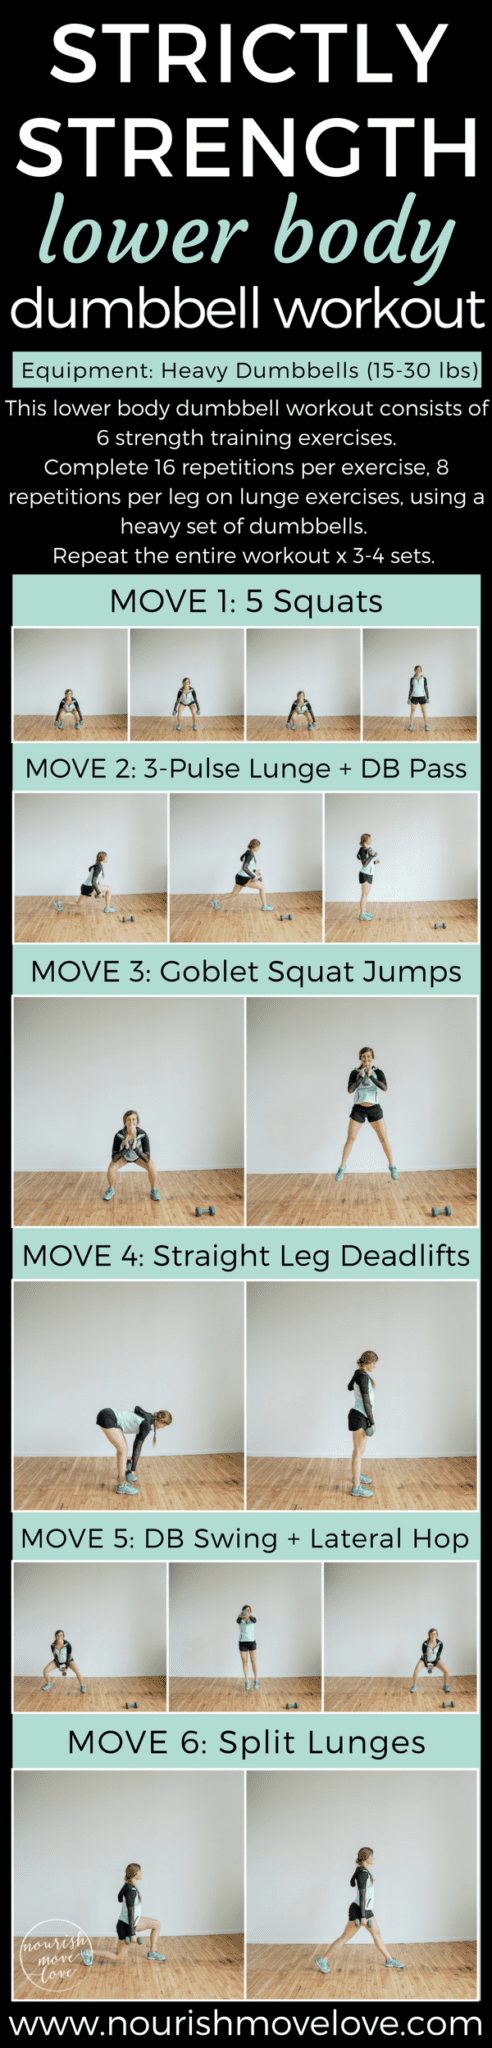 Strictly Strength Lower Body Dumbbell Workout | www.nourishmovelove.com